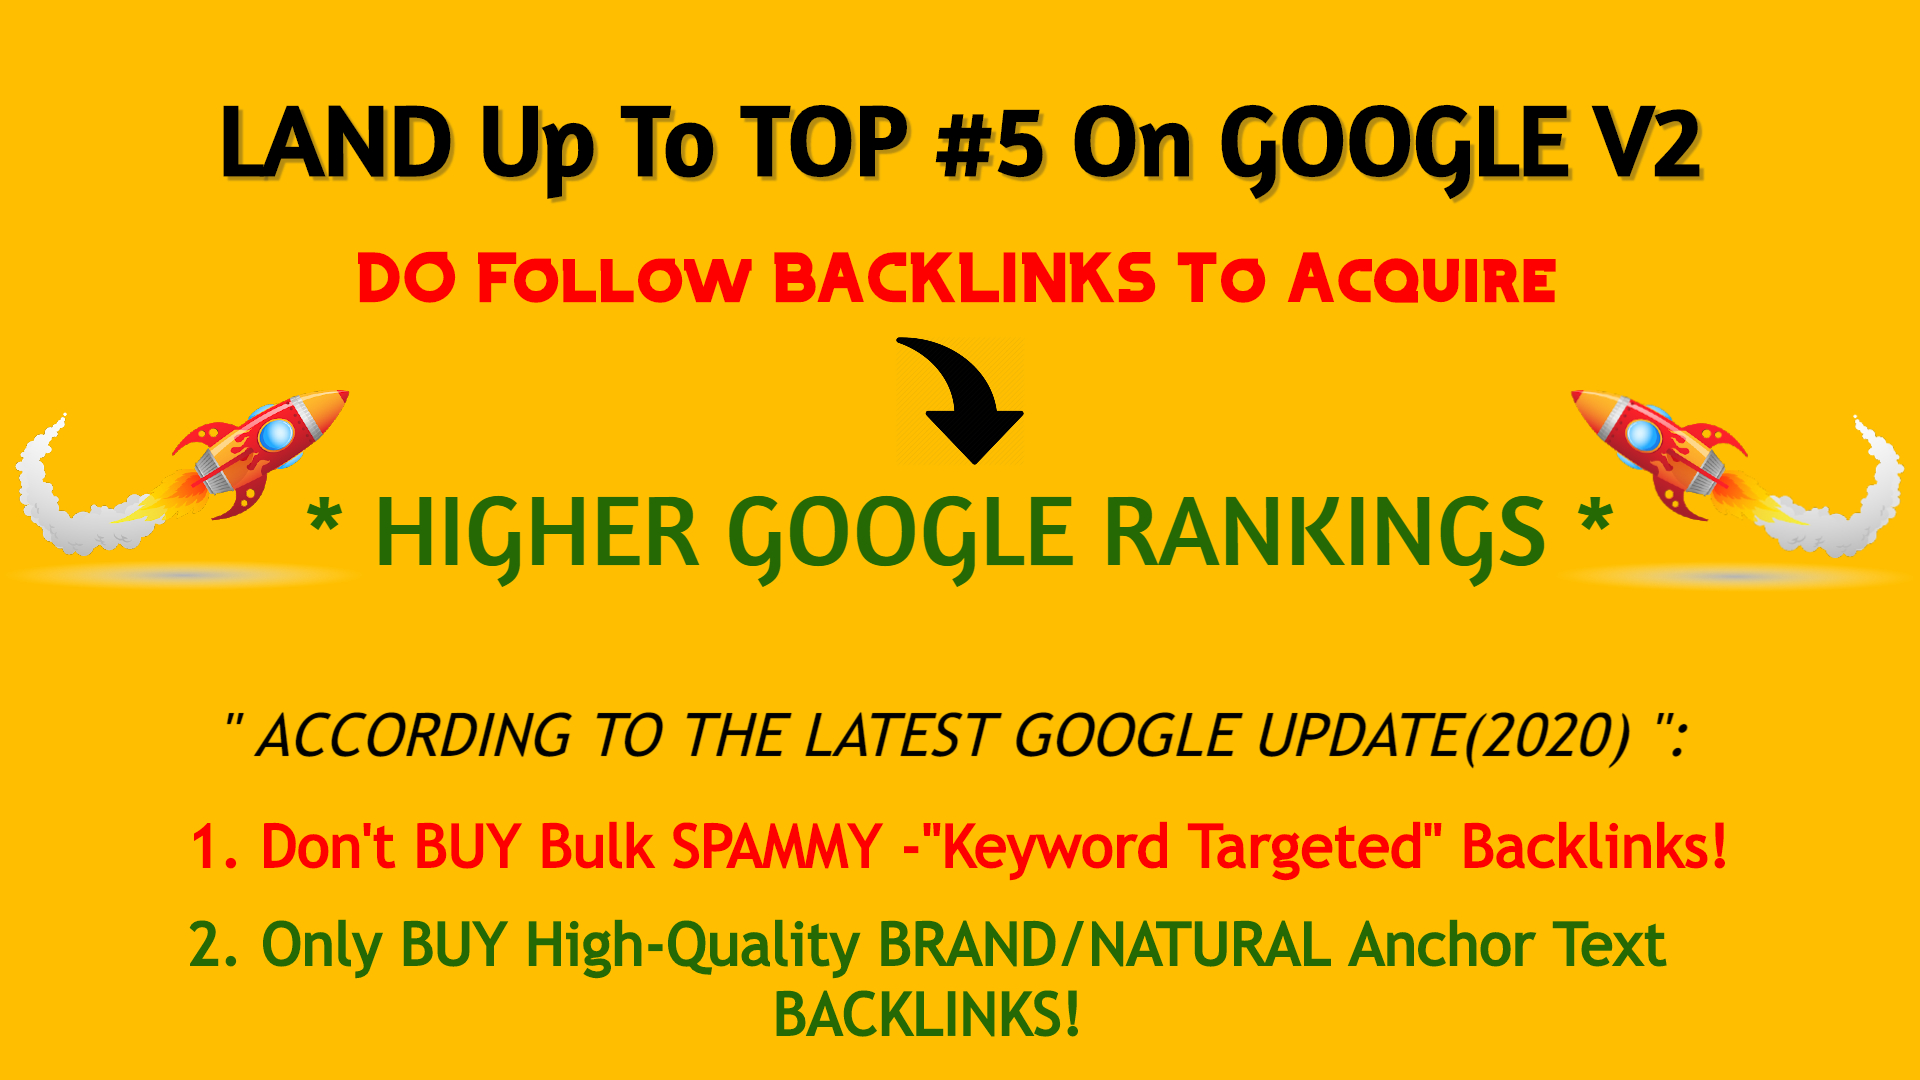 Land Up To Top 5 On Google V2 - Keyword Oriented PBN Articles